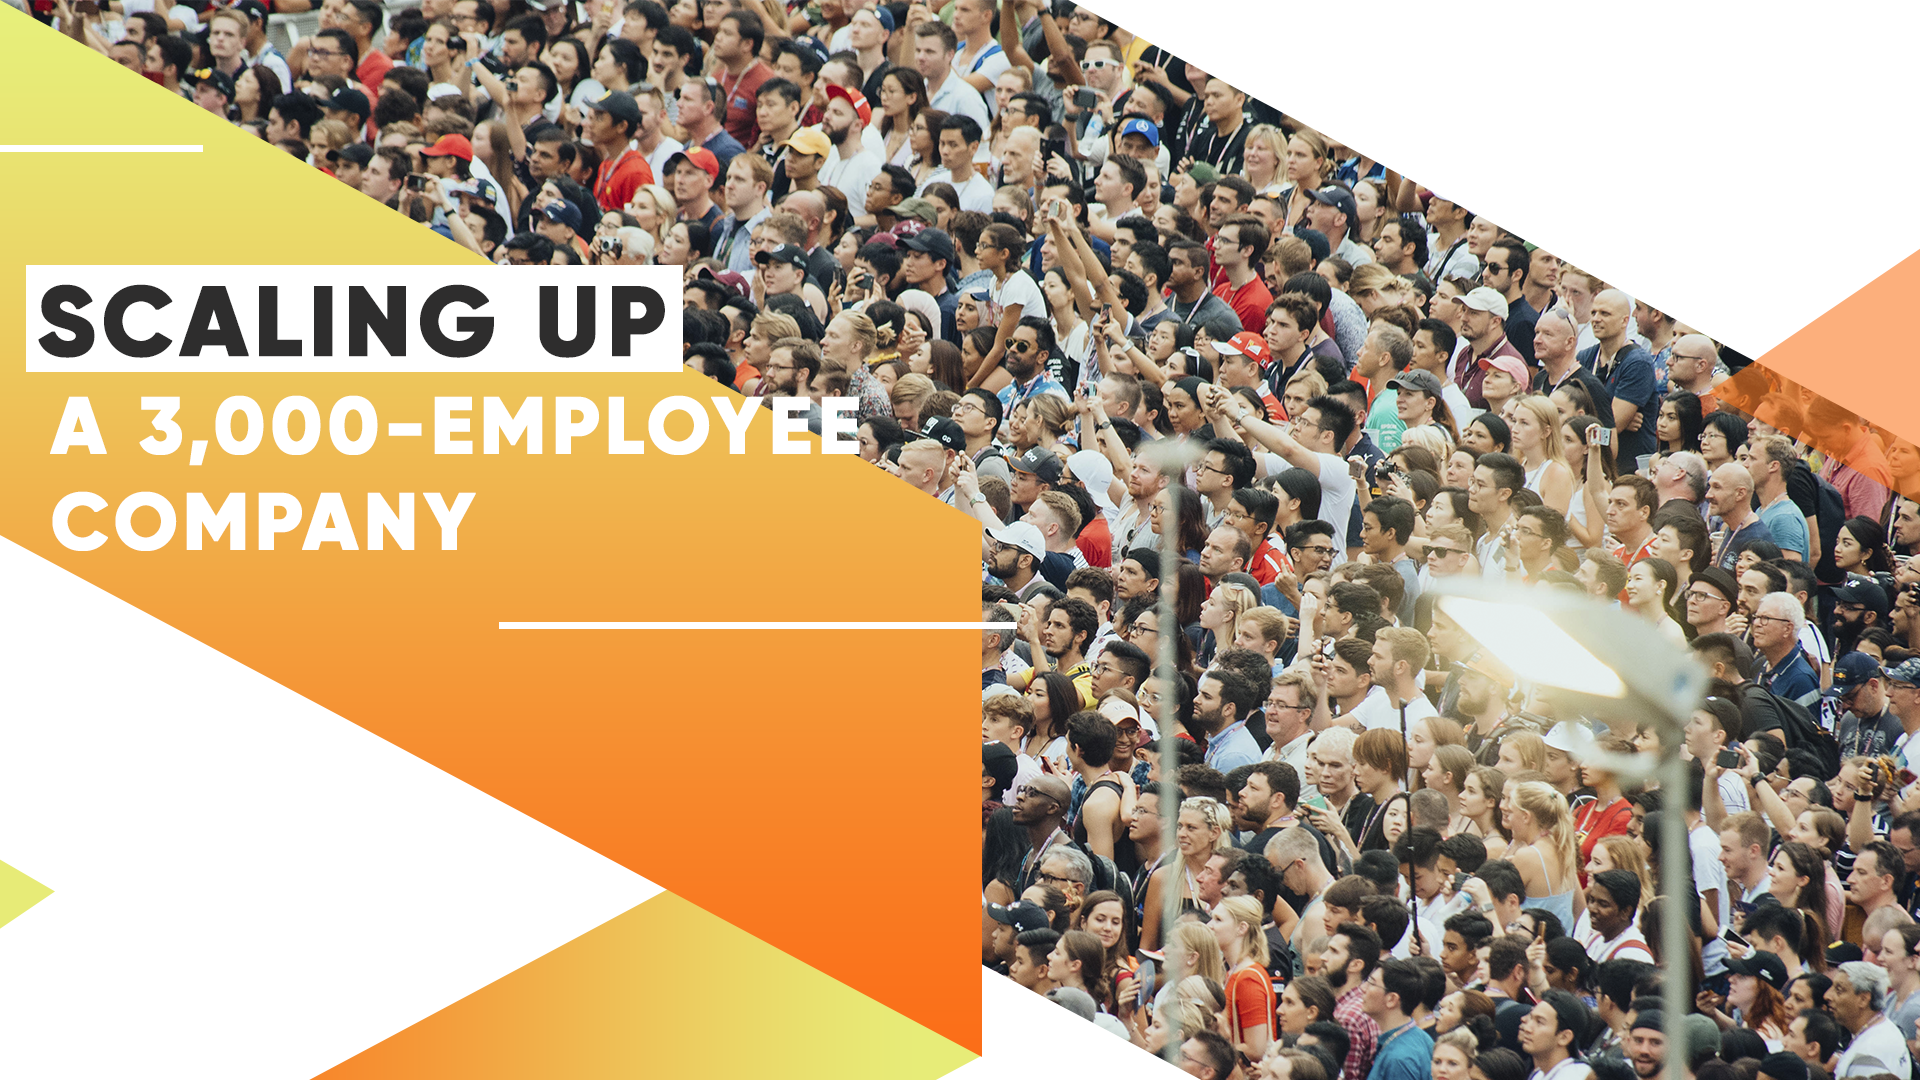 Scaling Up a 3,000-Employee Company